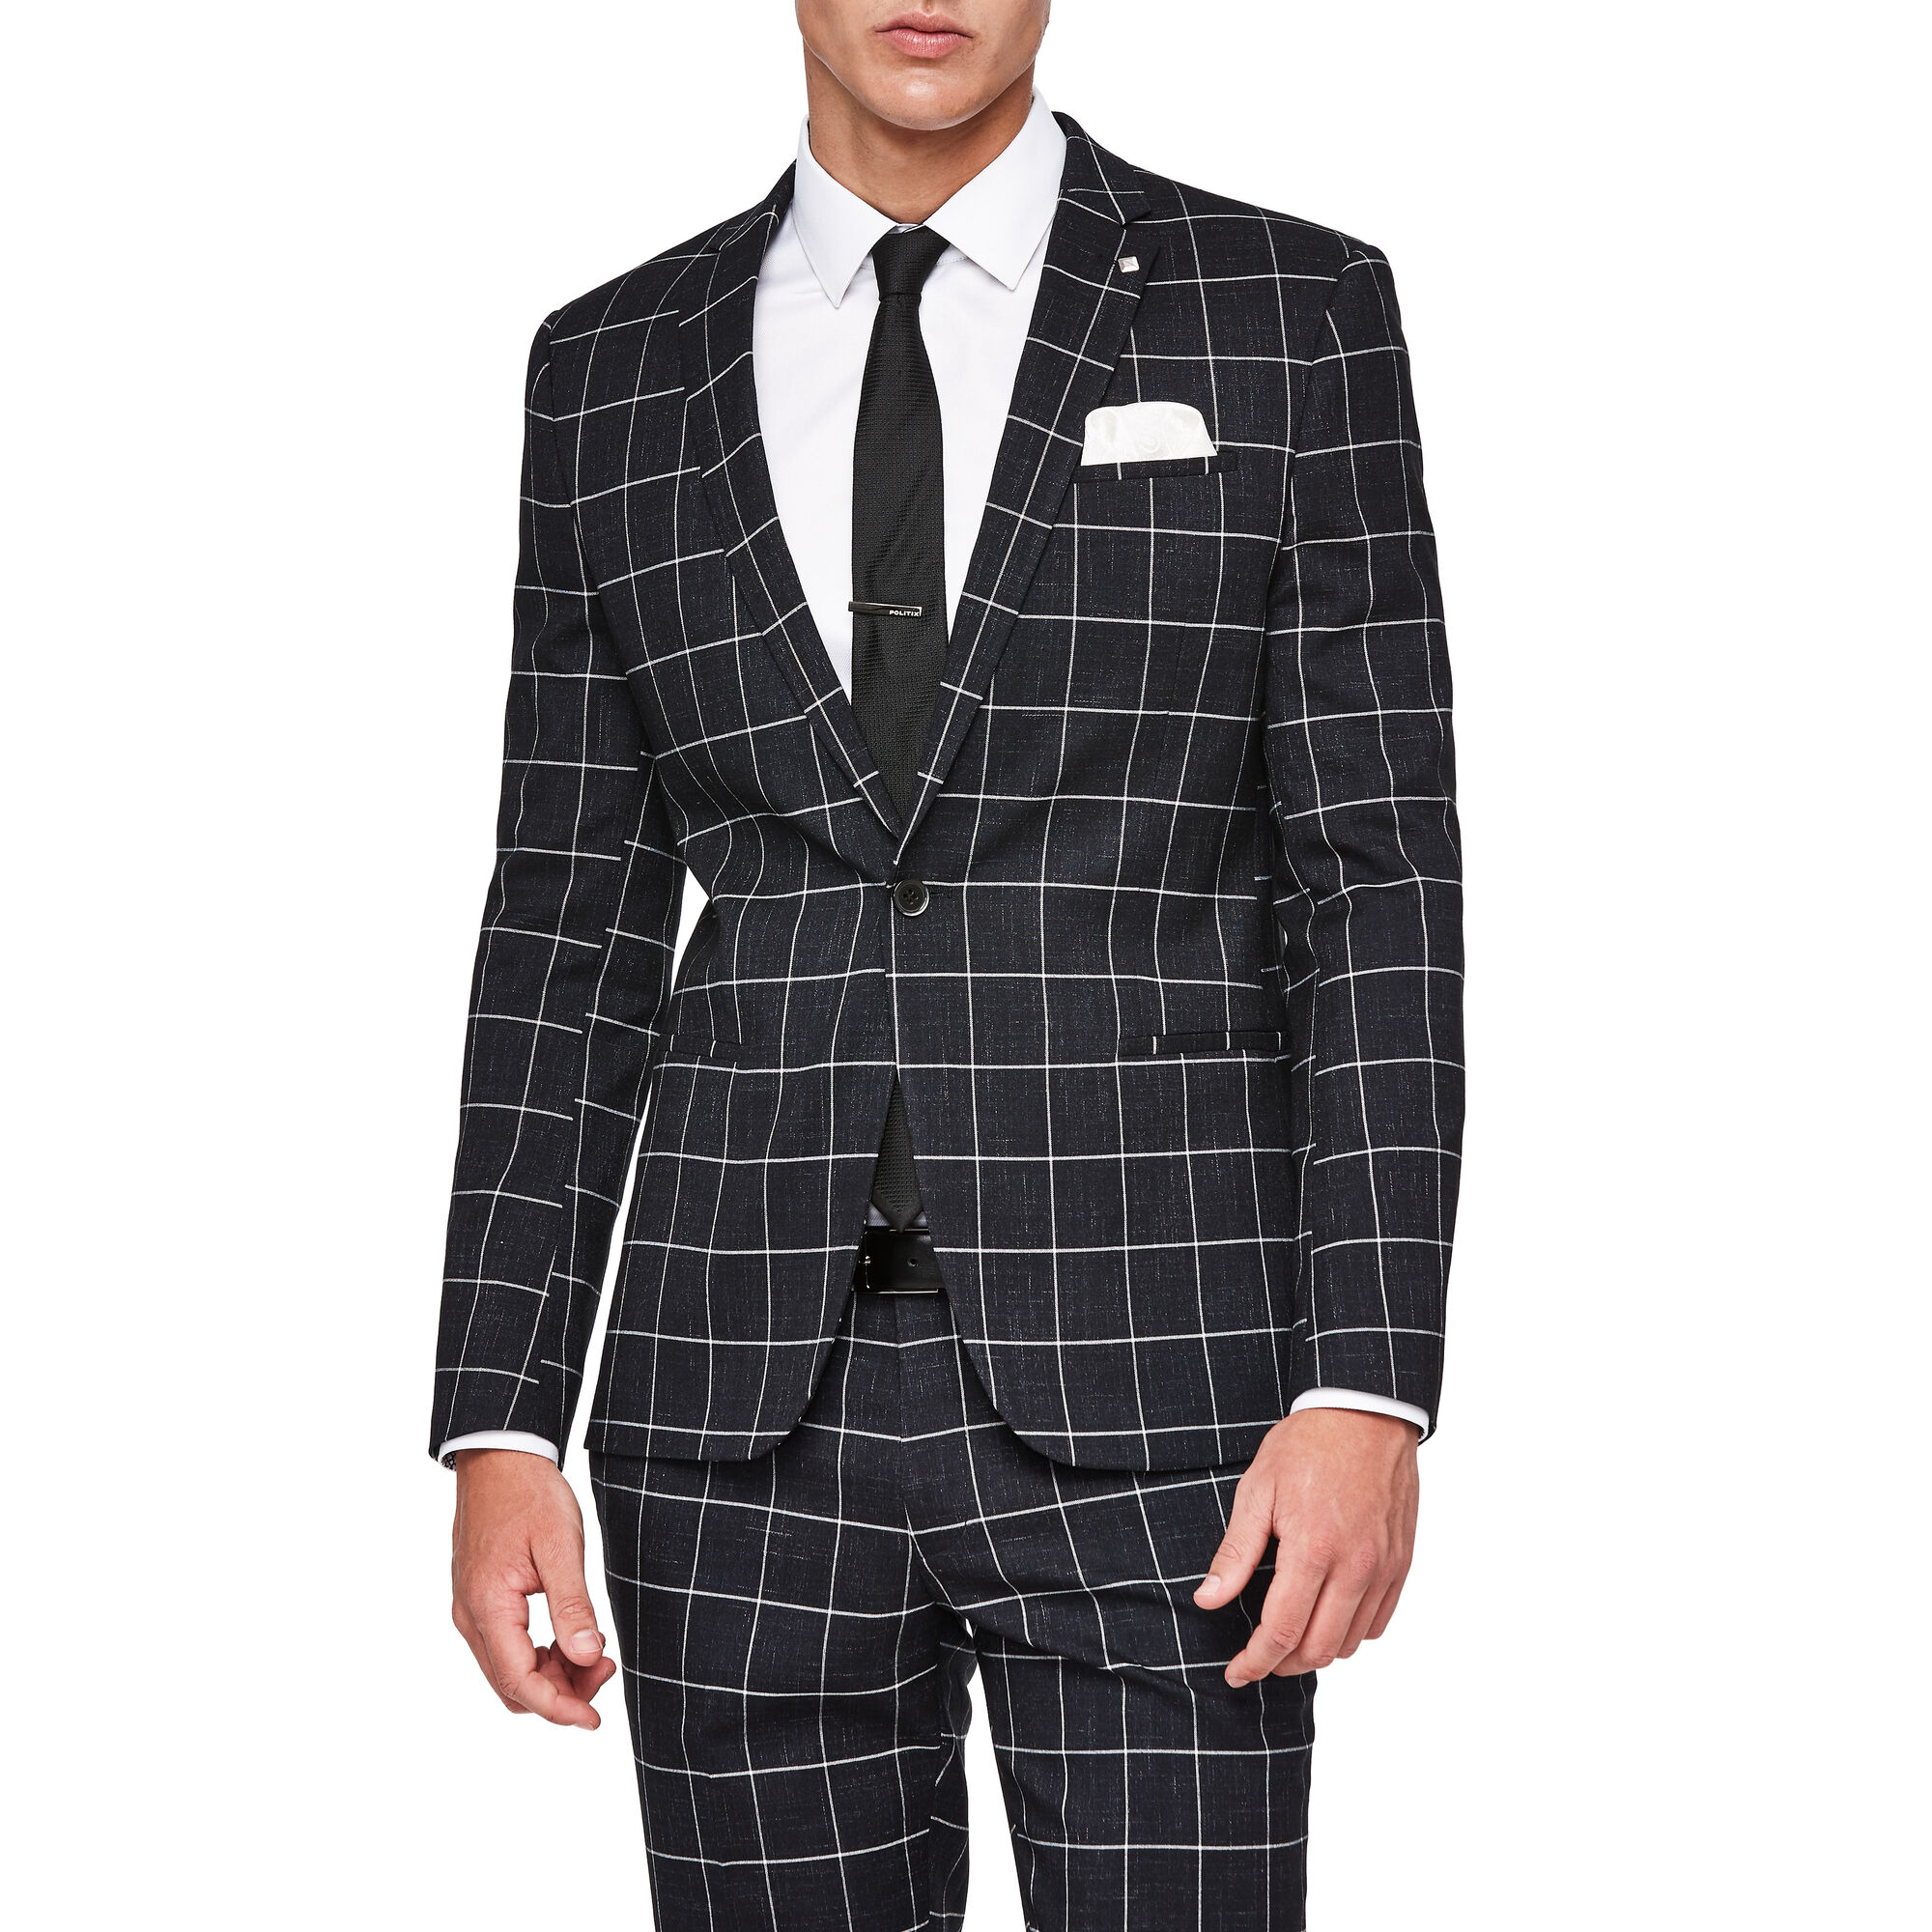 wedding suit 2021 Bold check dark coloured suits